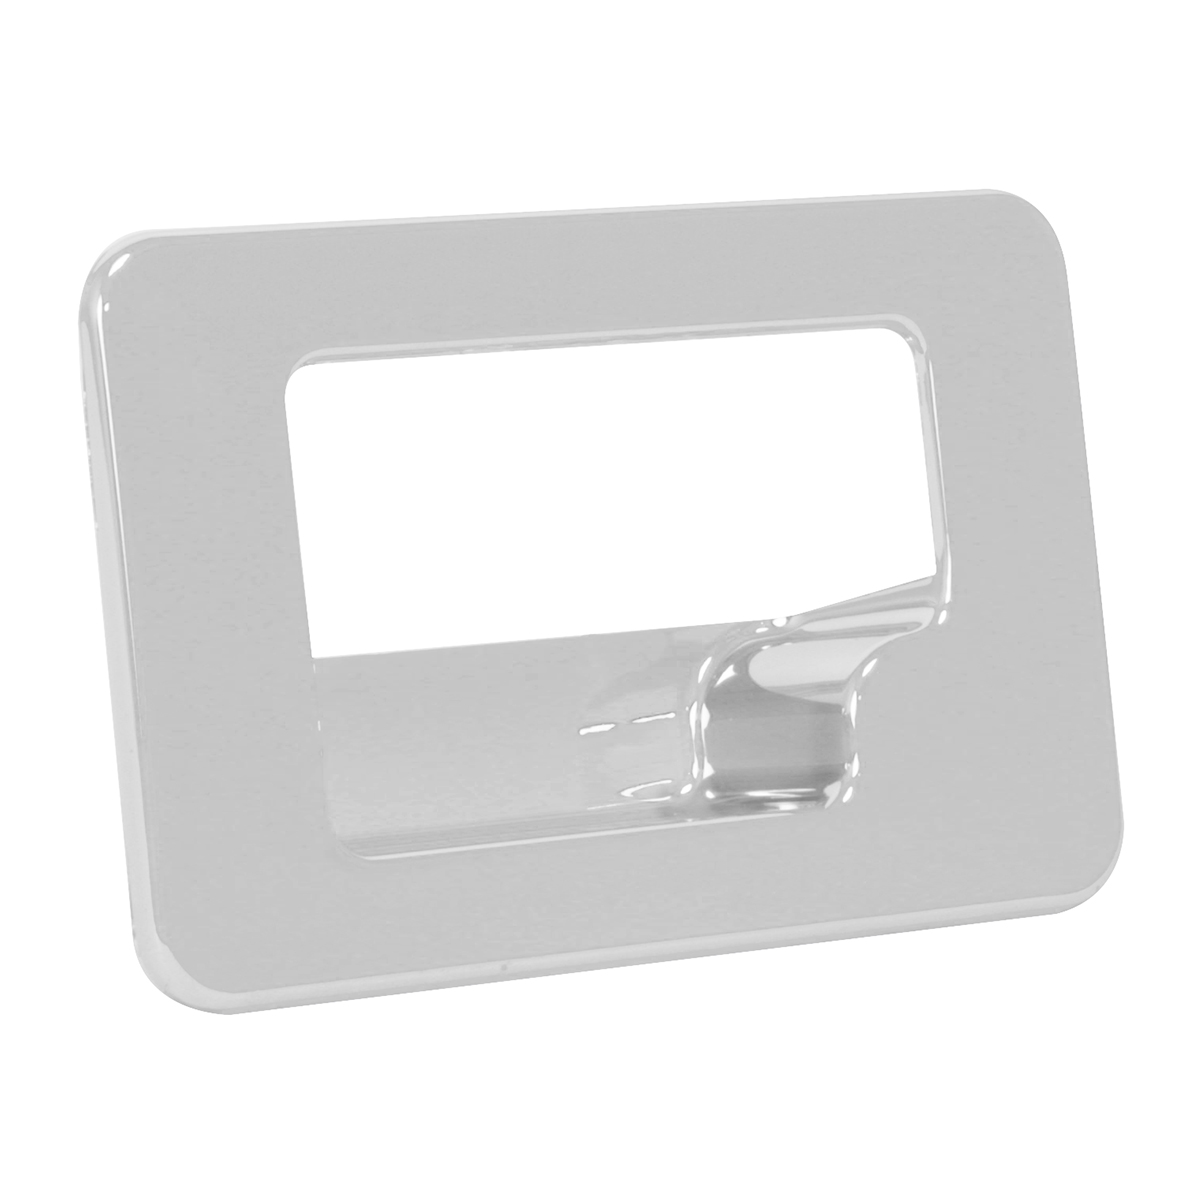 66992 Glove Box Latch Cover for Kenworth W